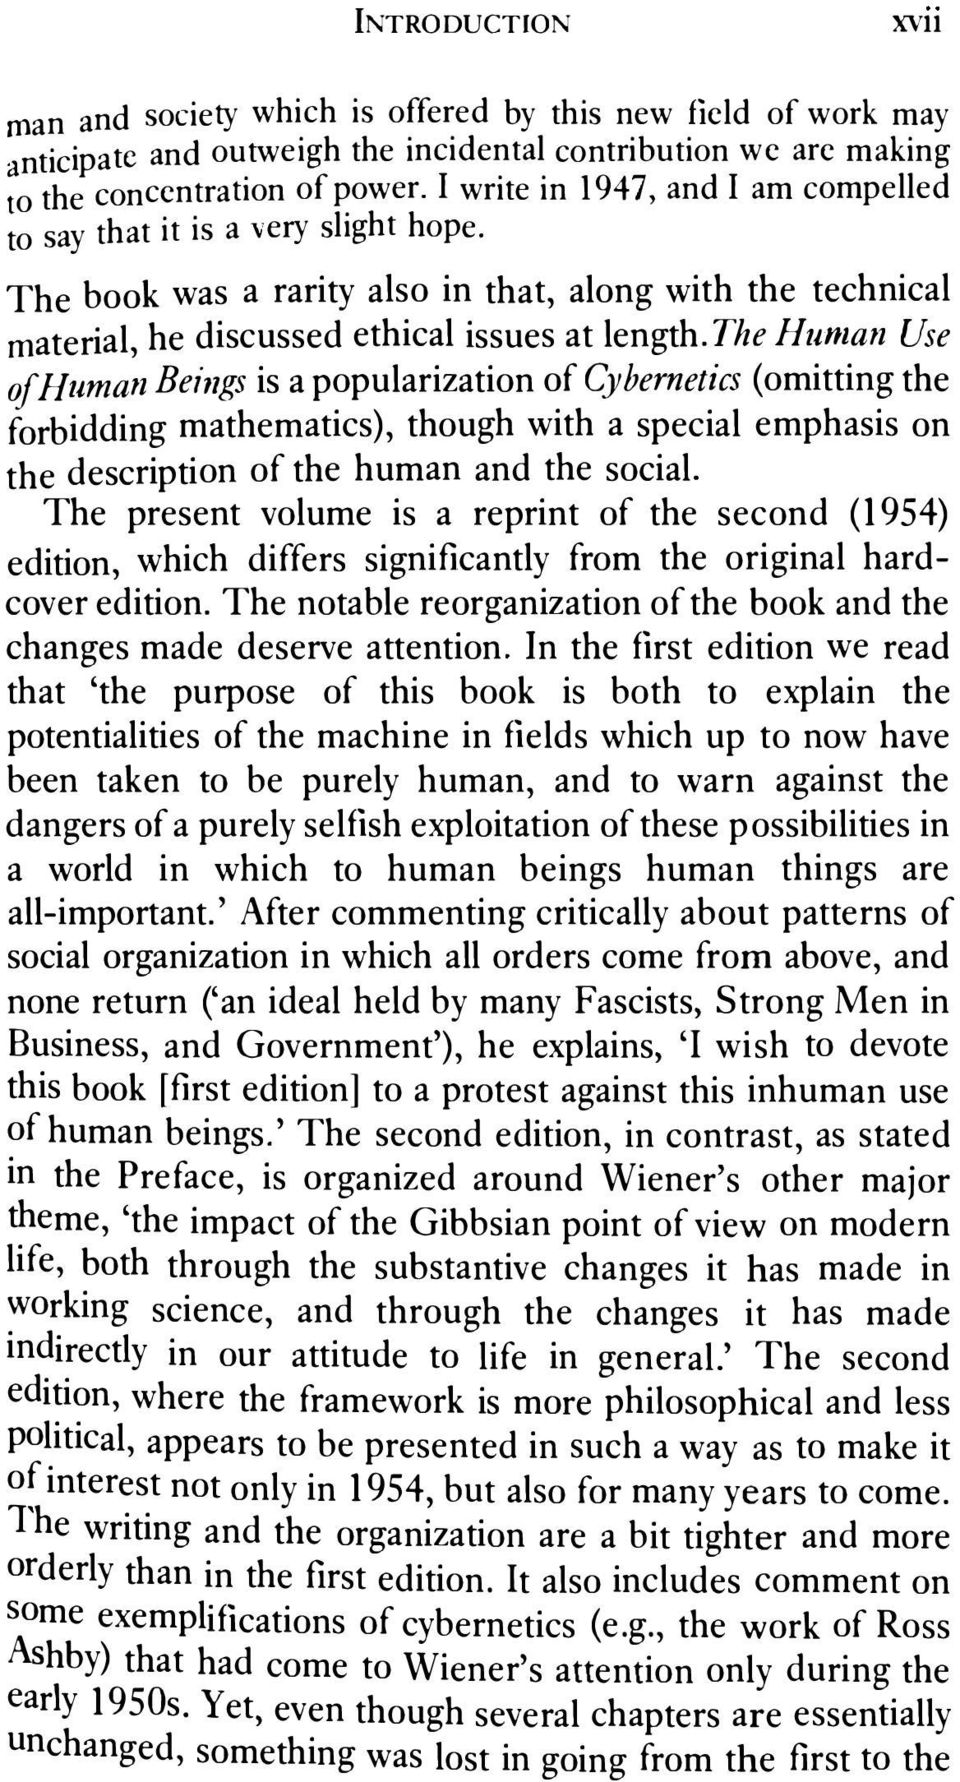 The Human Use o/human Beings is a popularization of Cybernetics (omitting the forbidding mathematics), though with a special emphasis on the description of the human and the social.